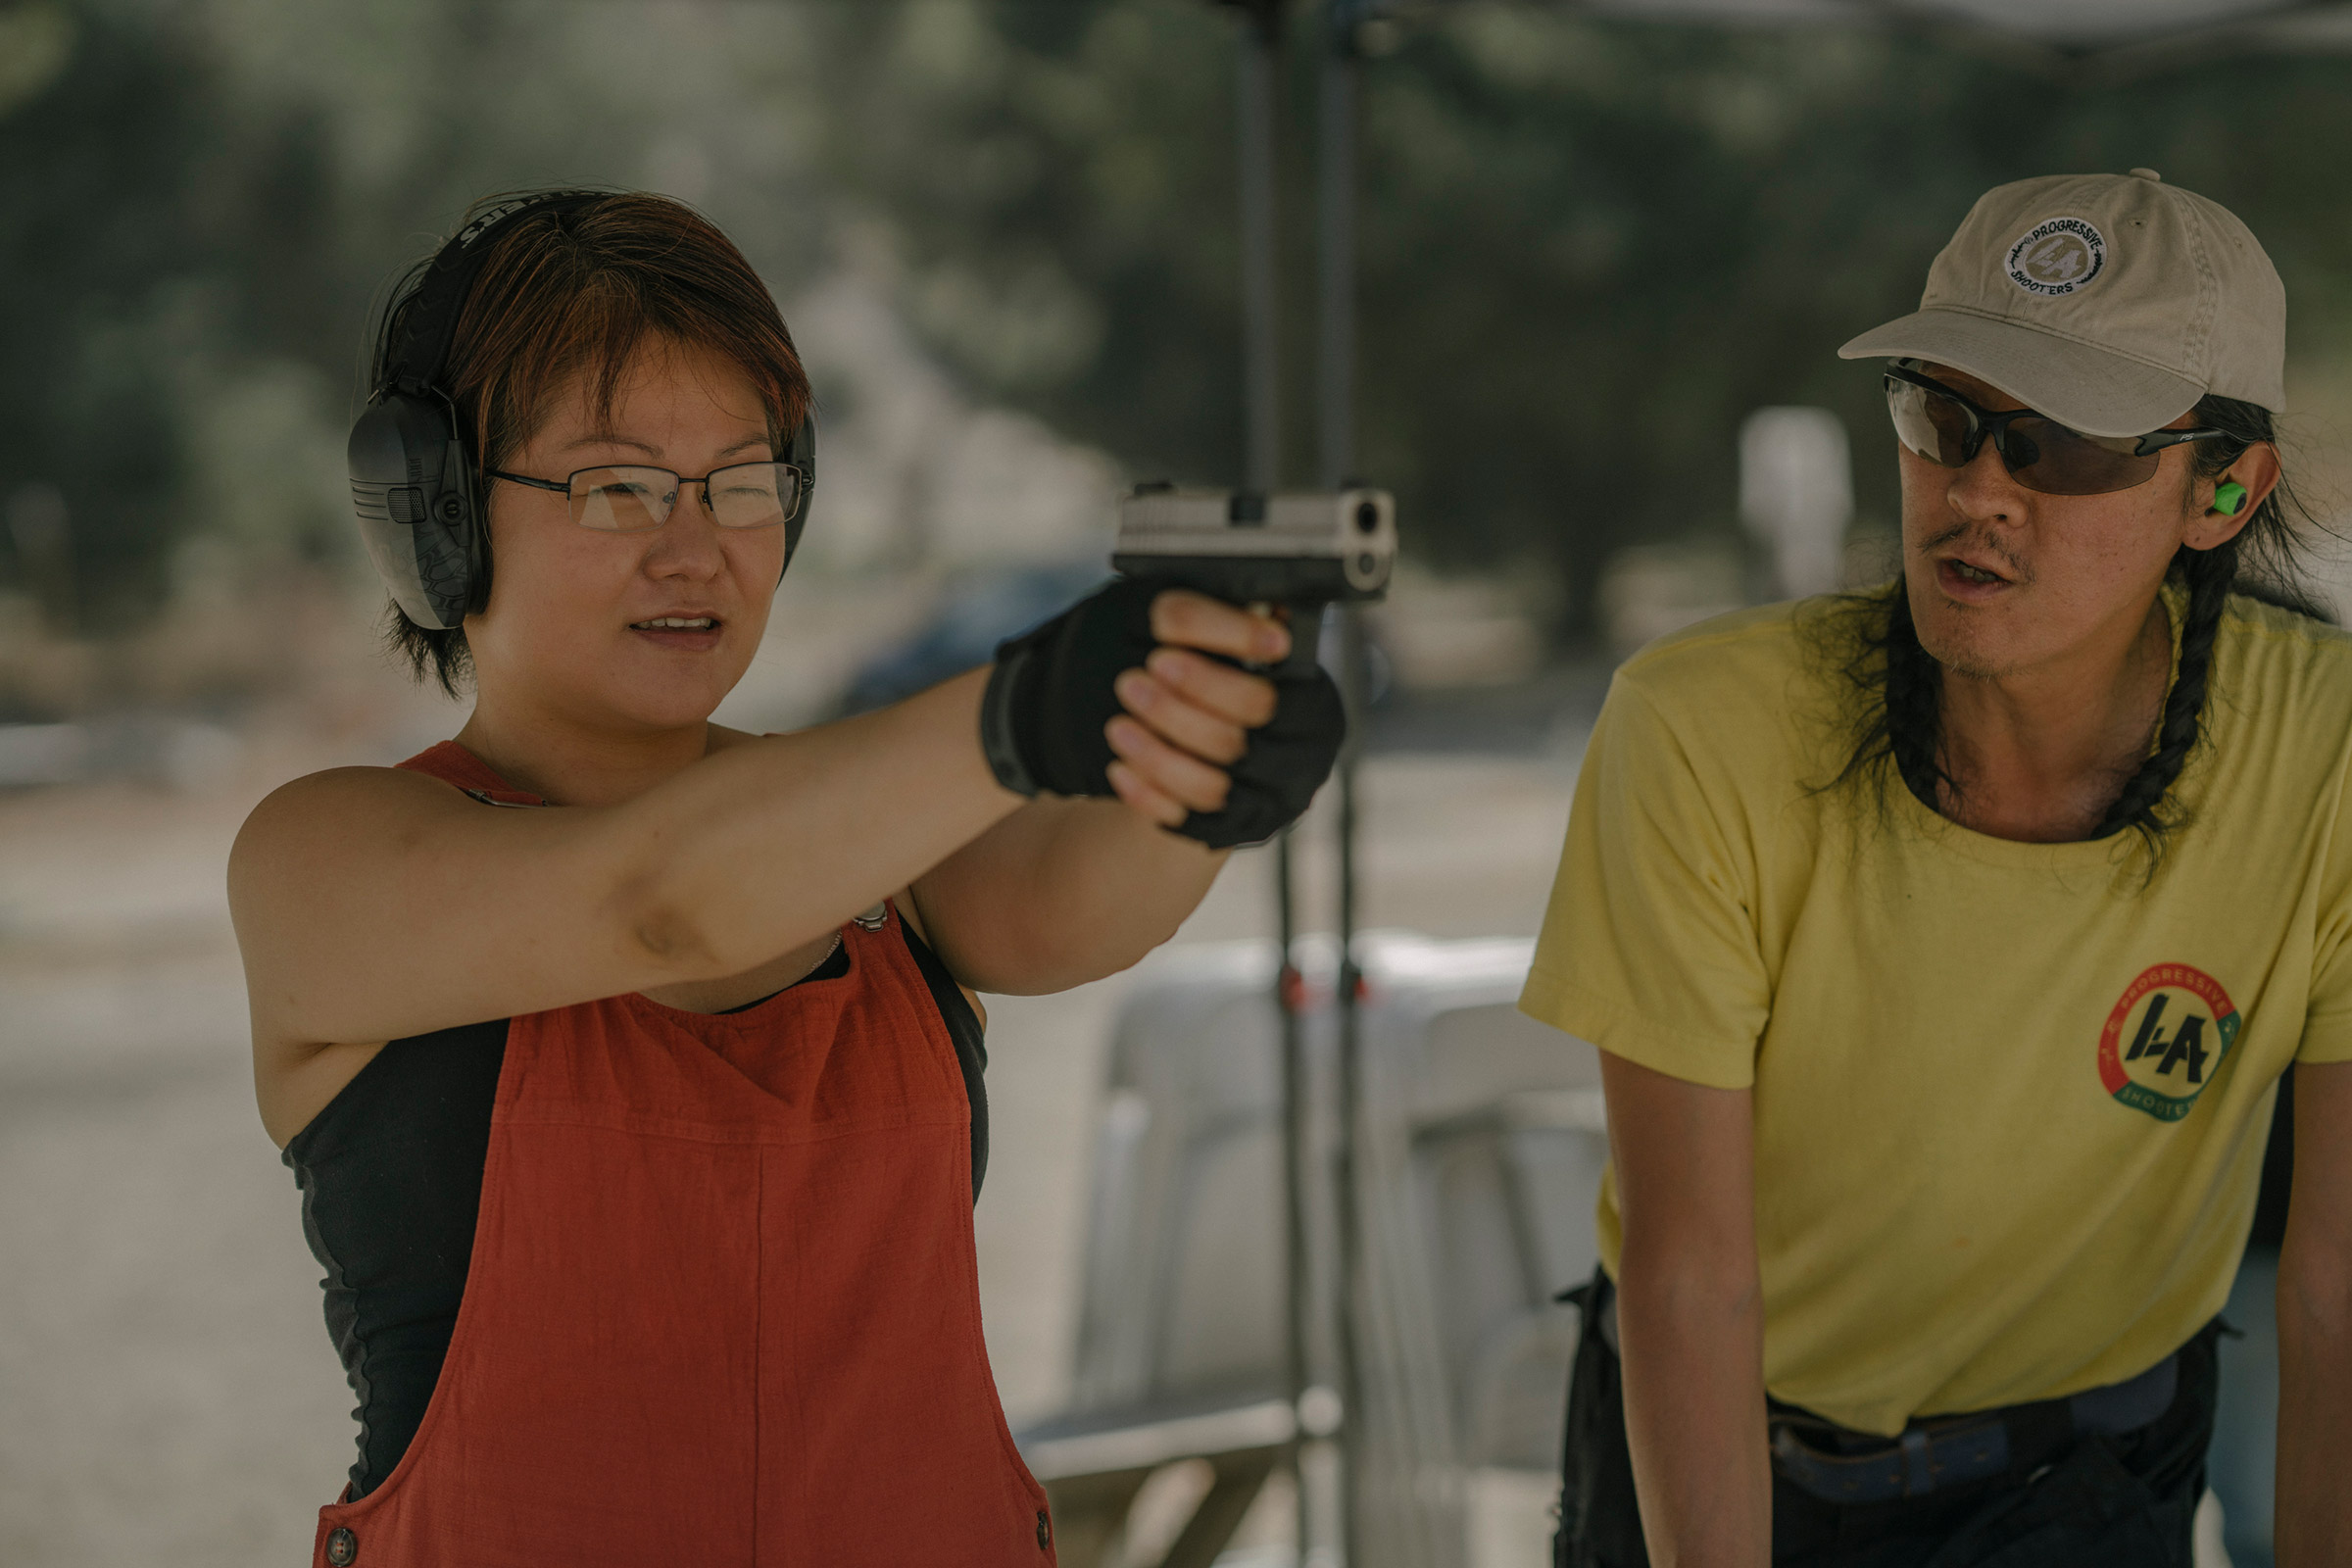 Svetlana Kim practices shooting her new handgun while standing next to Tom Nguyen, instructor and founder of L.A. Progressive Shooters, at the Burro Canyon Shooting Park in Azusa, CA on July 18, 2020.  Nguyen founded L.A. Progressive Shooters in the hopes of diversifying the population of gun owners.